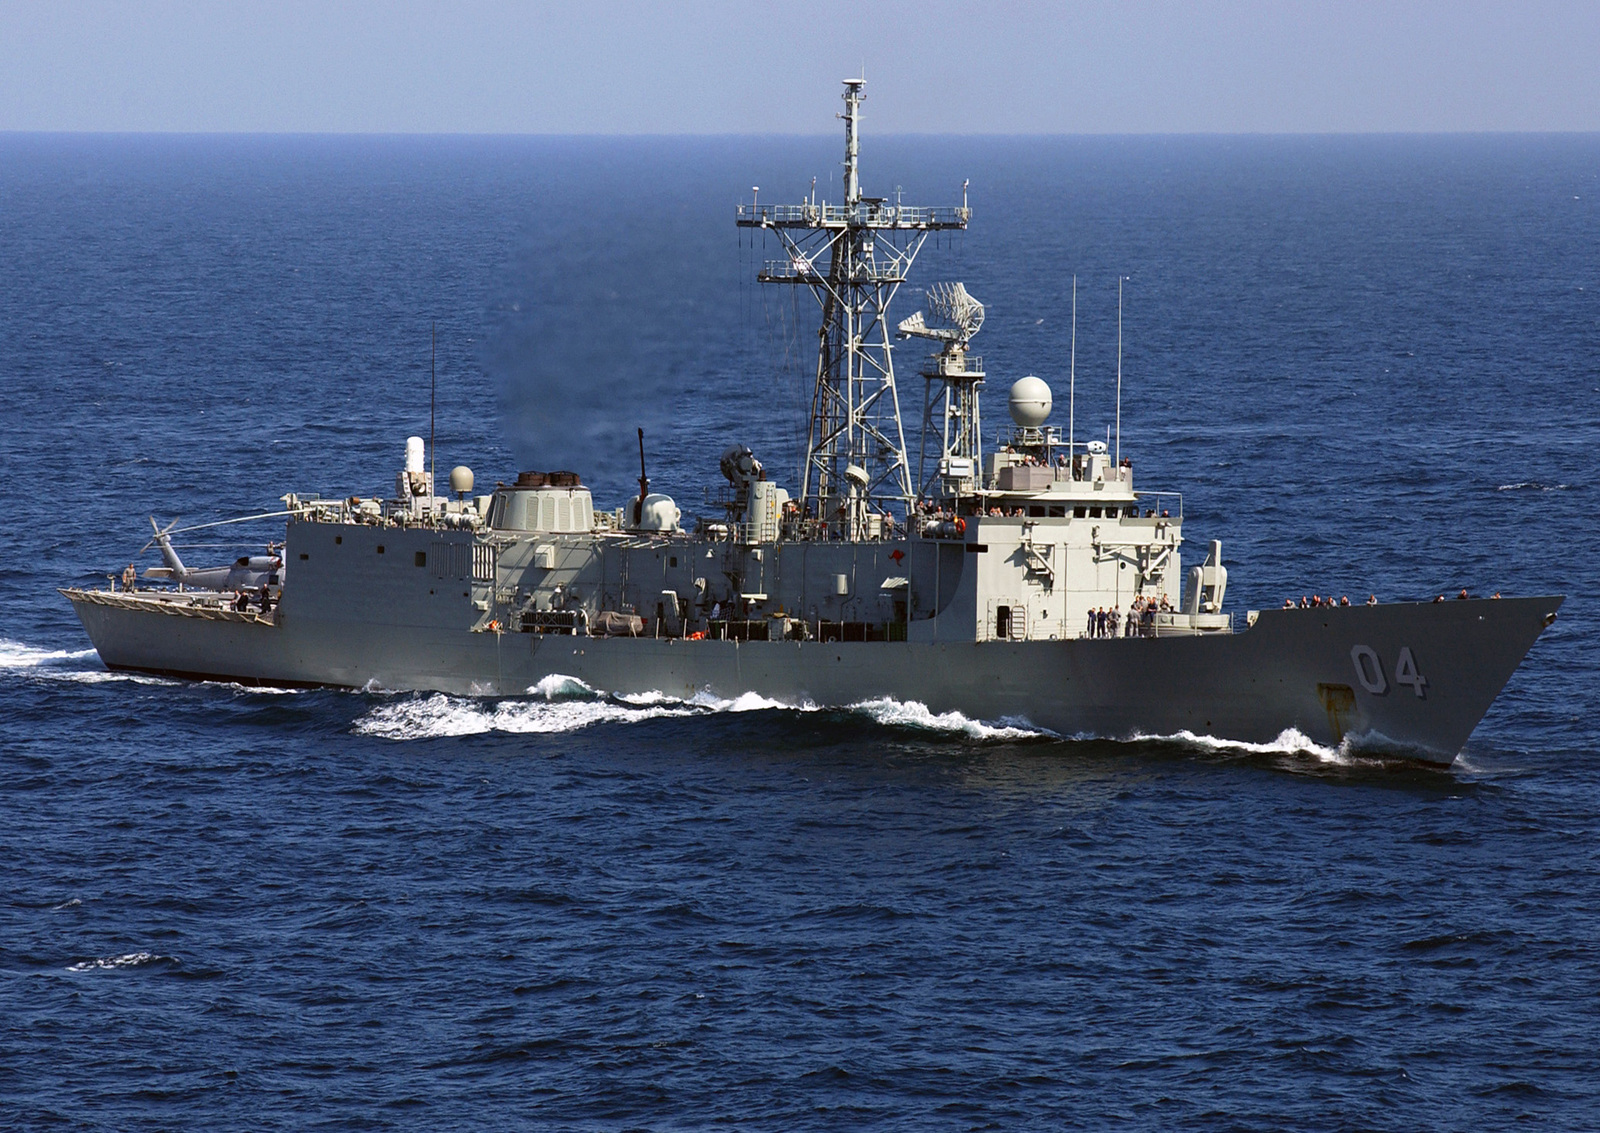 Starboard view of the Royal Australian Navy Adelaide Class Guided Missile Frigate HMAS (Her Majestys Australian